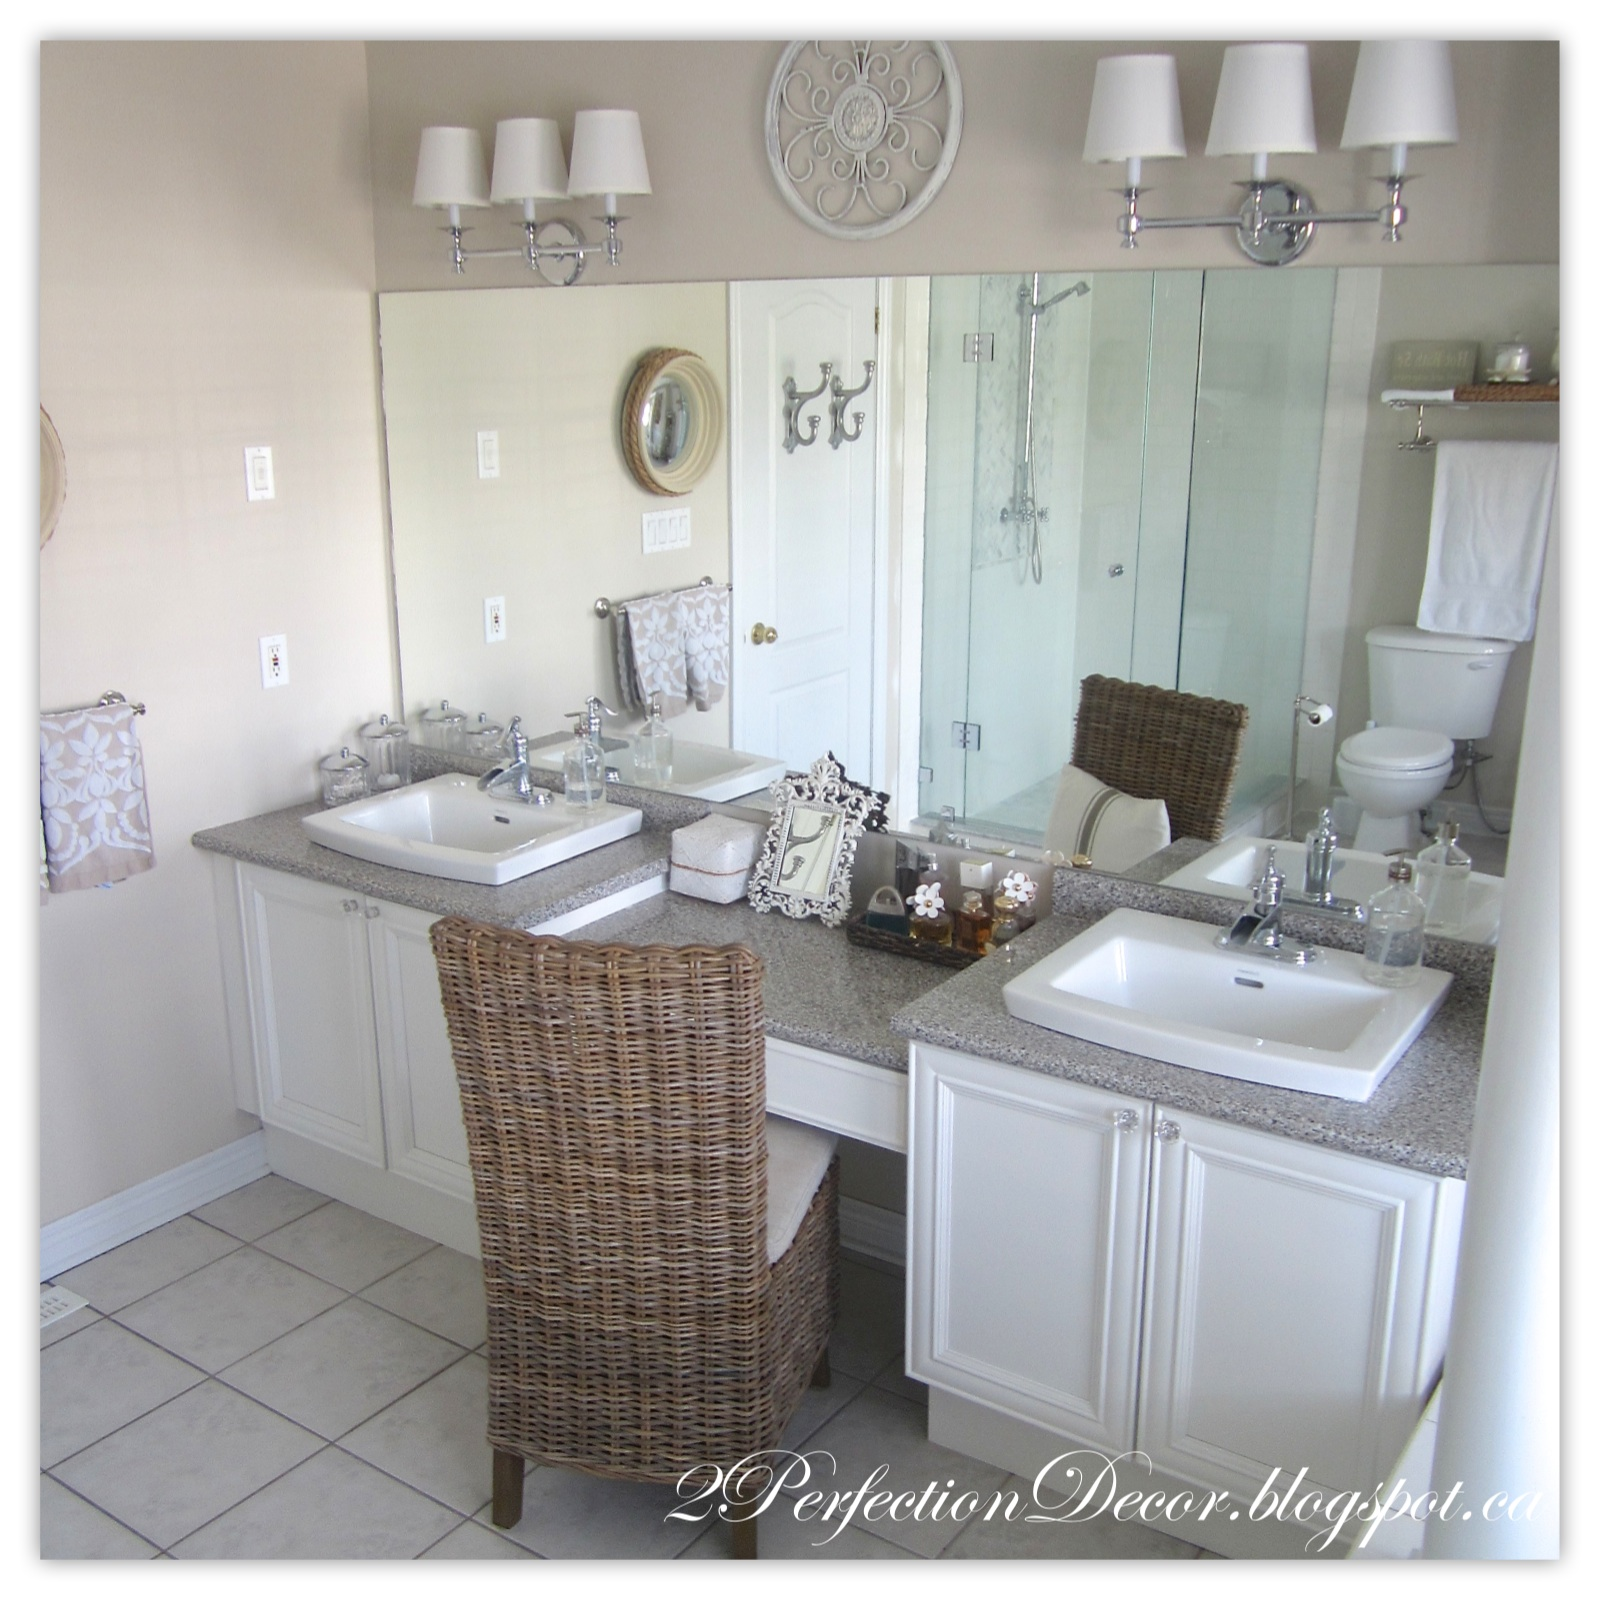 2Perfection Decor: Updating old Bathroom Sinks.. while re ...